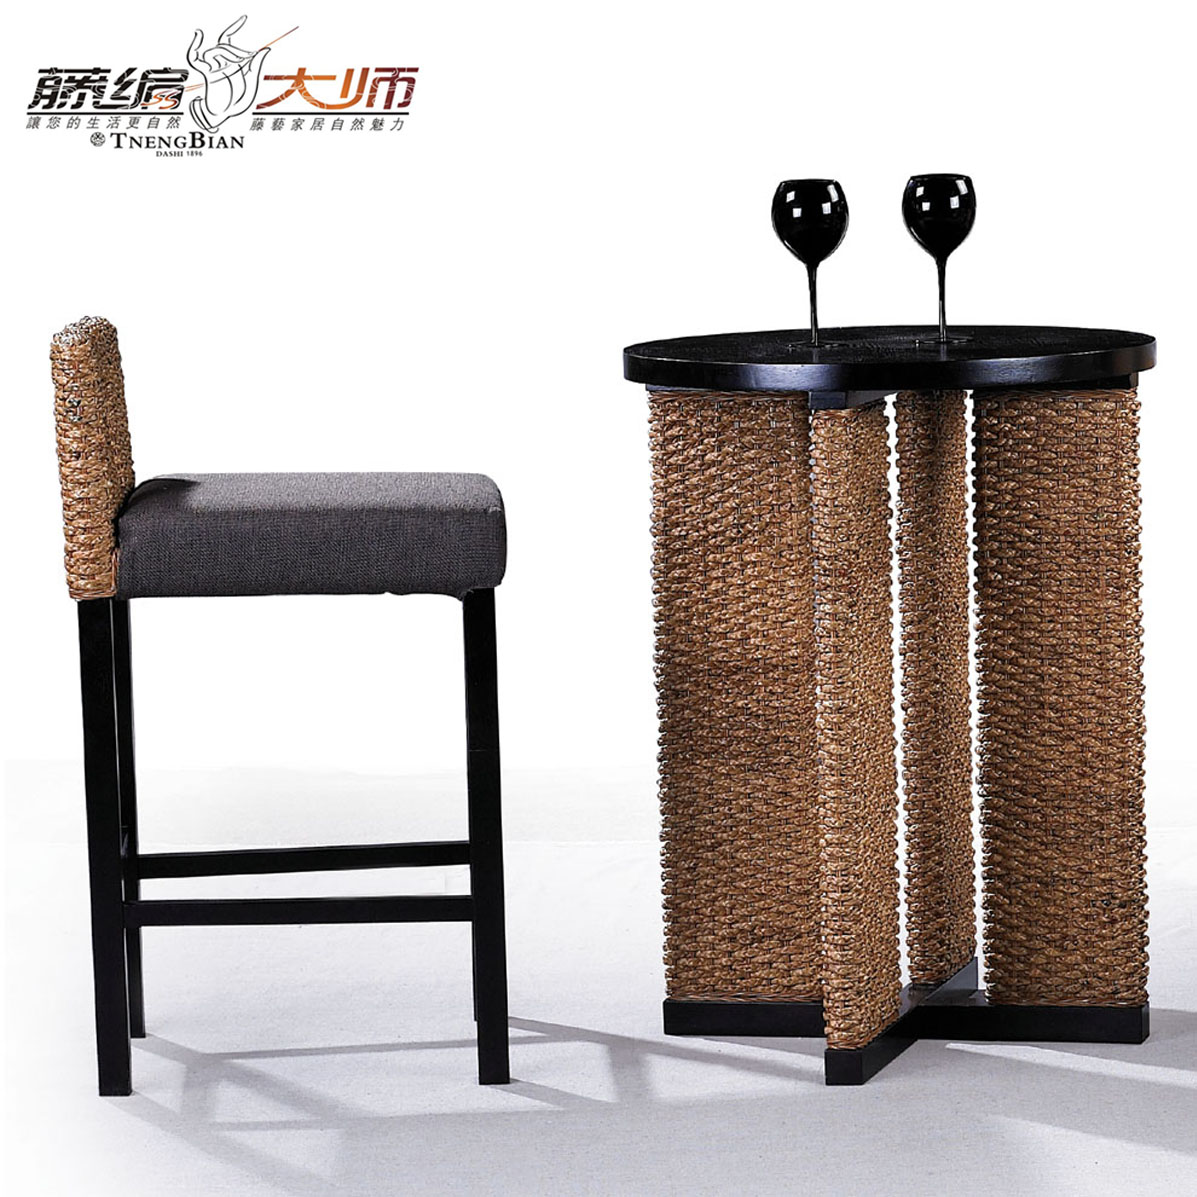 Master Asia and Indonesia rattan cane furniture hotel bar stool chair lounge<br><br>Aliexpress